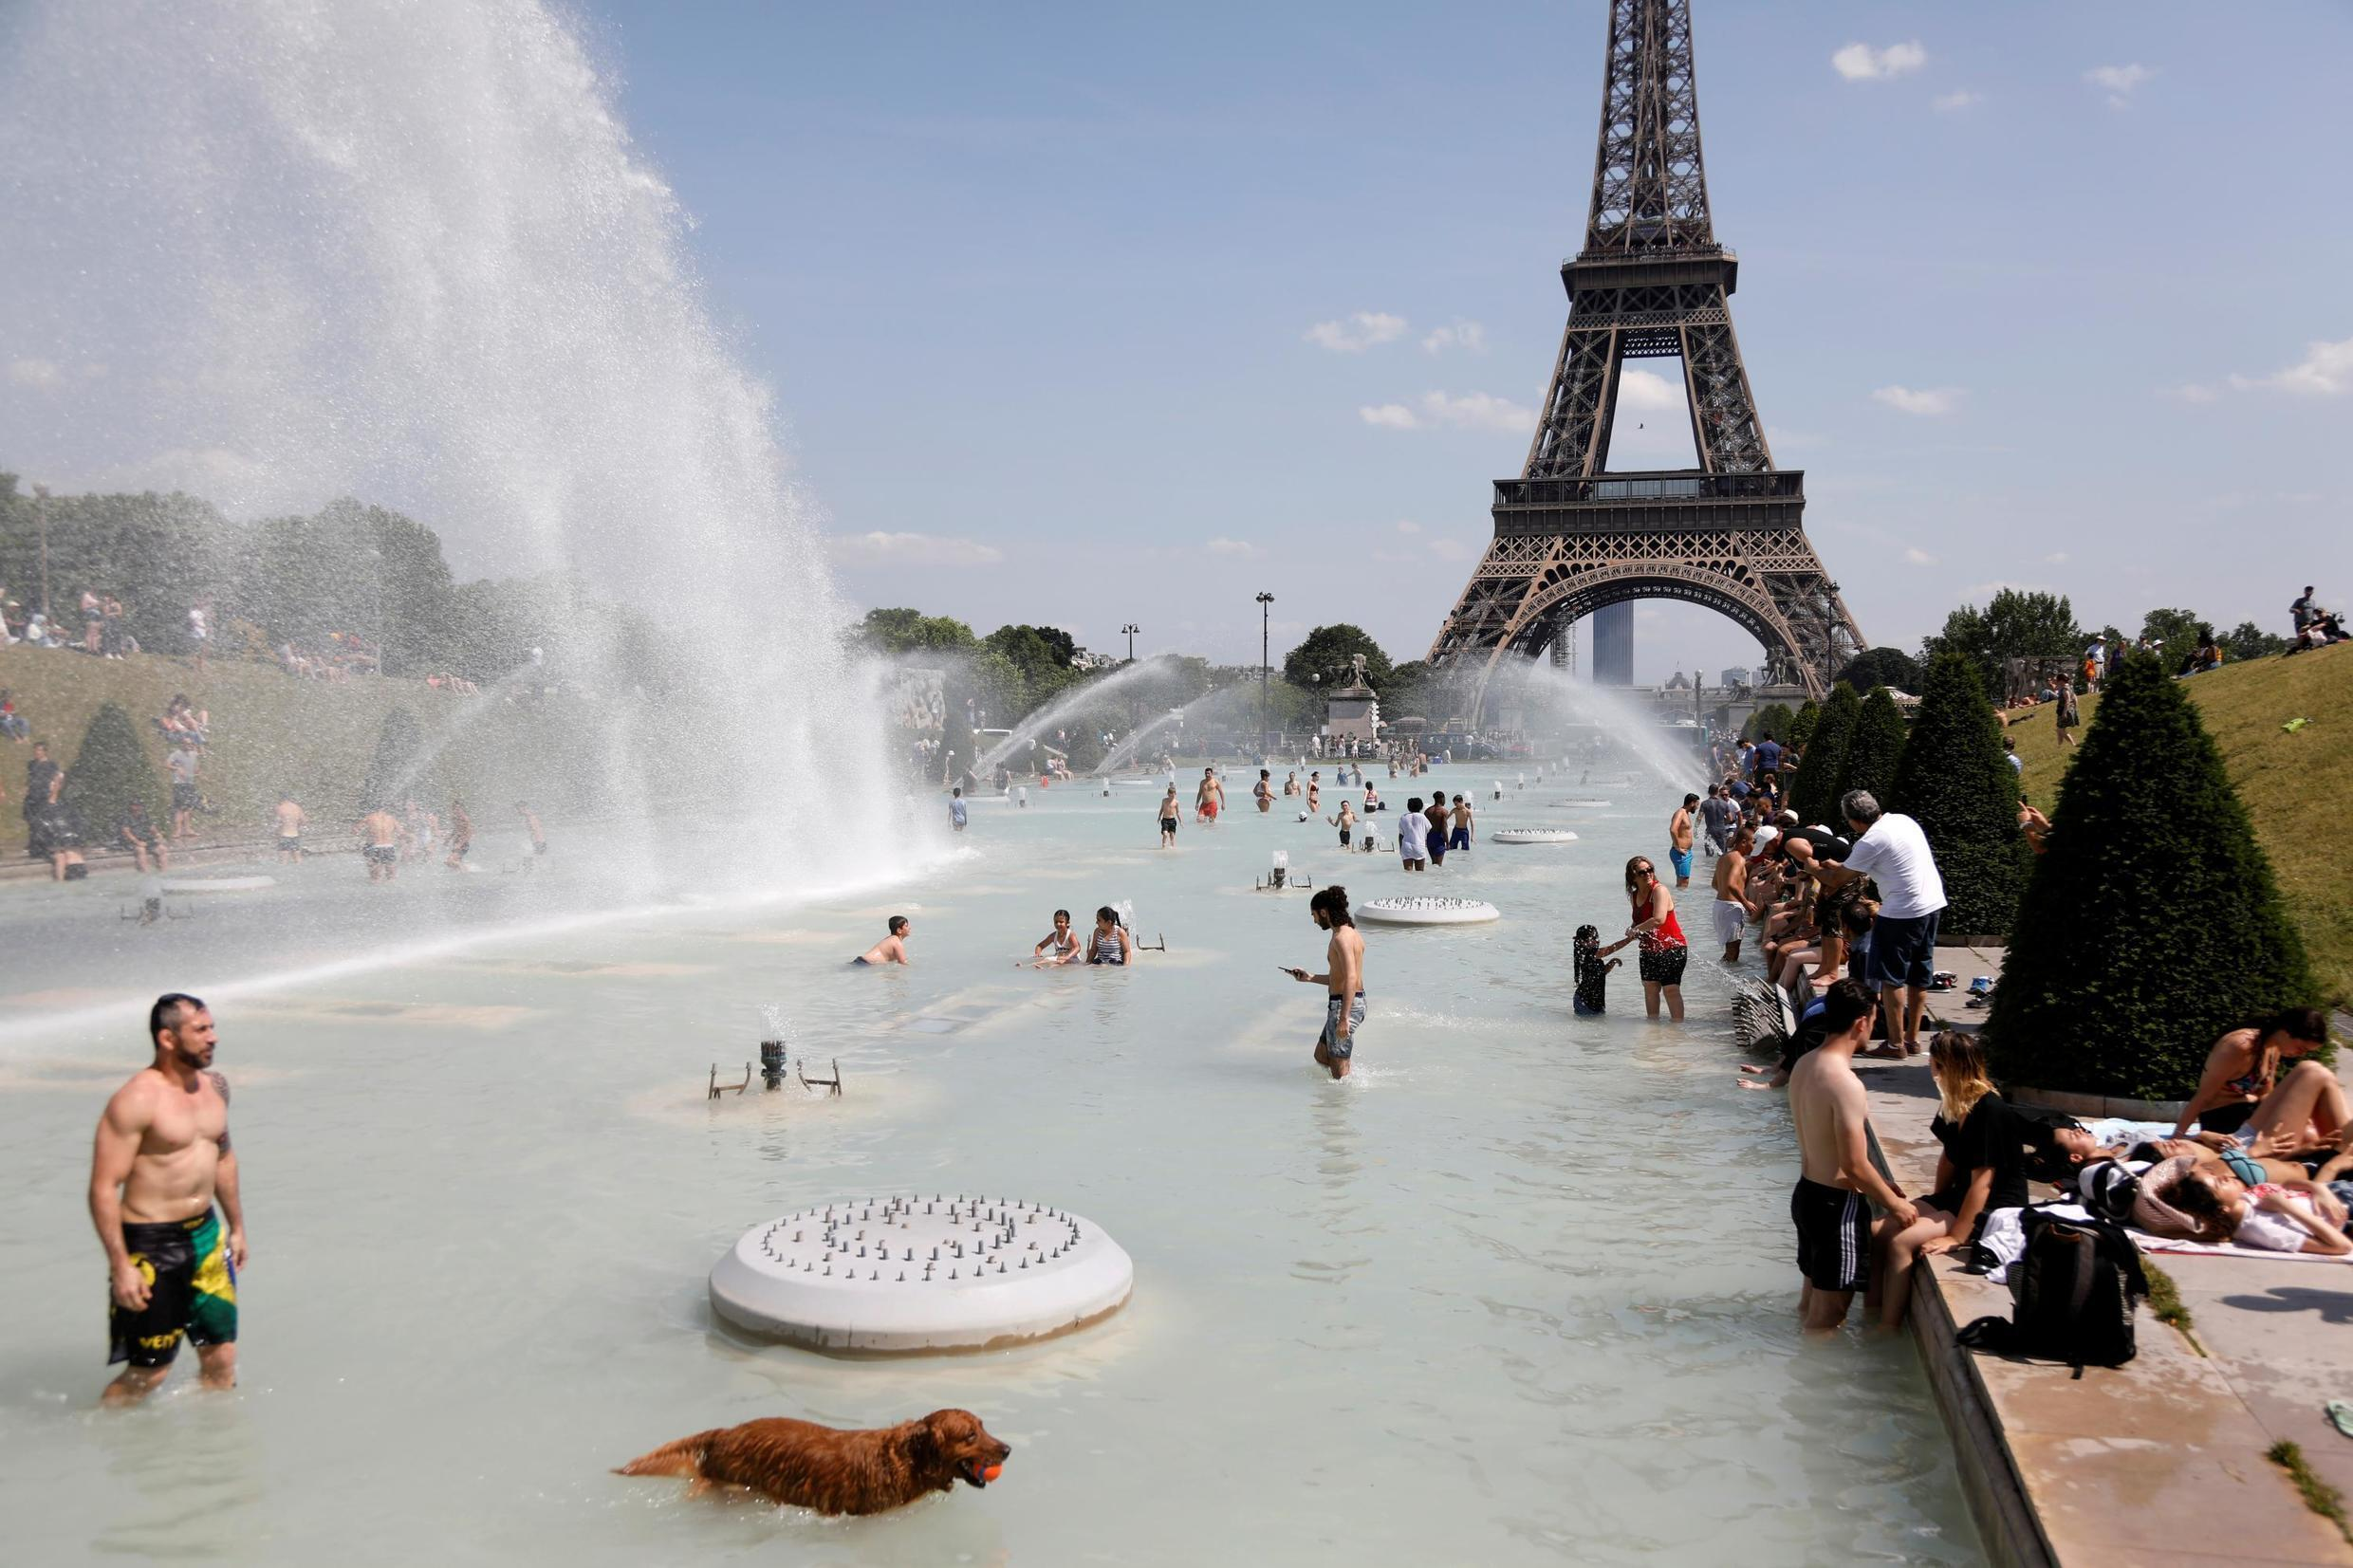 People cool off in the Trocadero fountains across from the Eiffel Tower in Paris as a July heatwave hit much of the country .